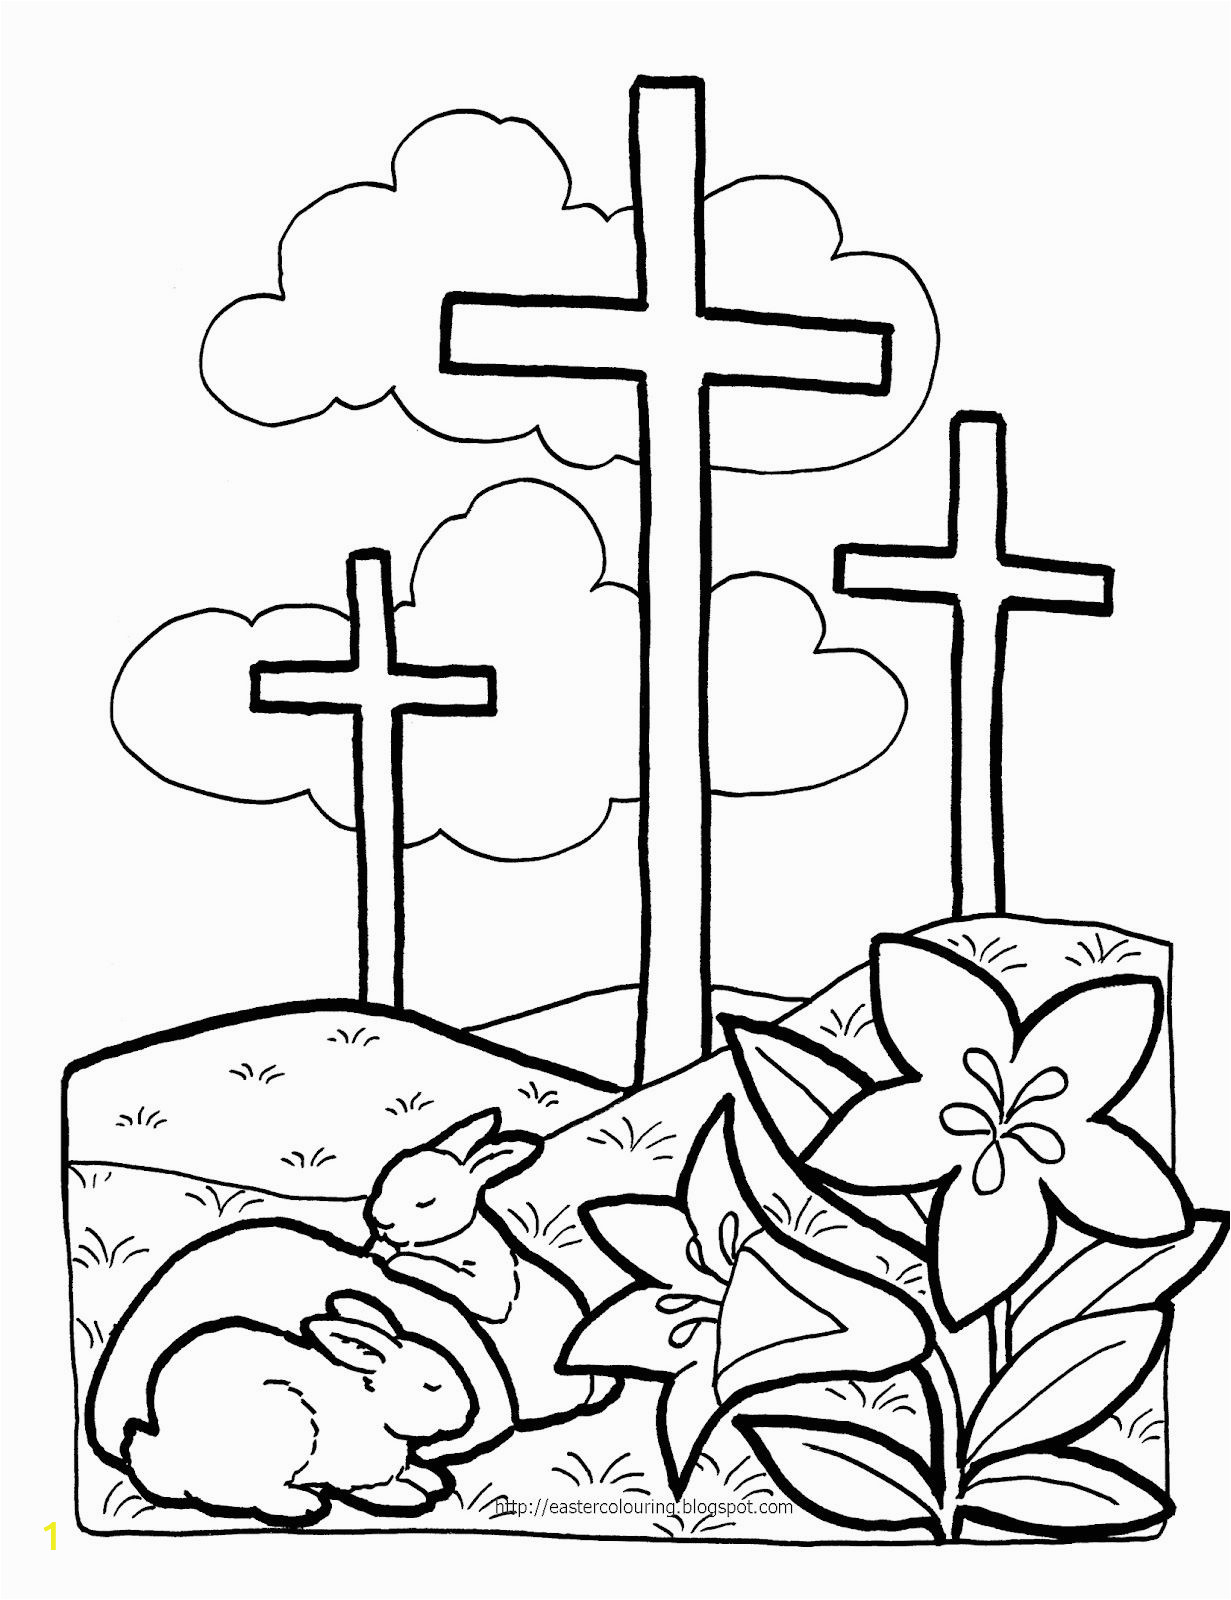 Coloring Pages Religious Easter Printable Pin Auf Kigo